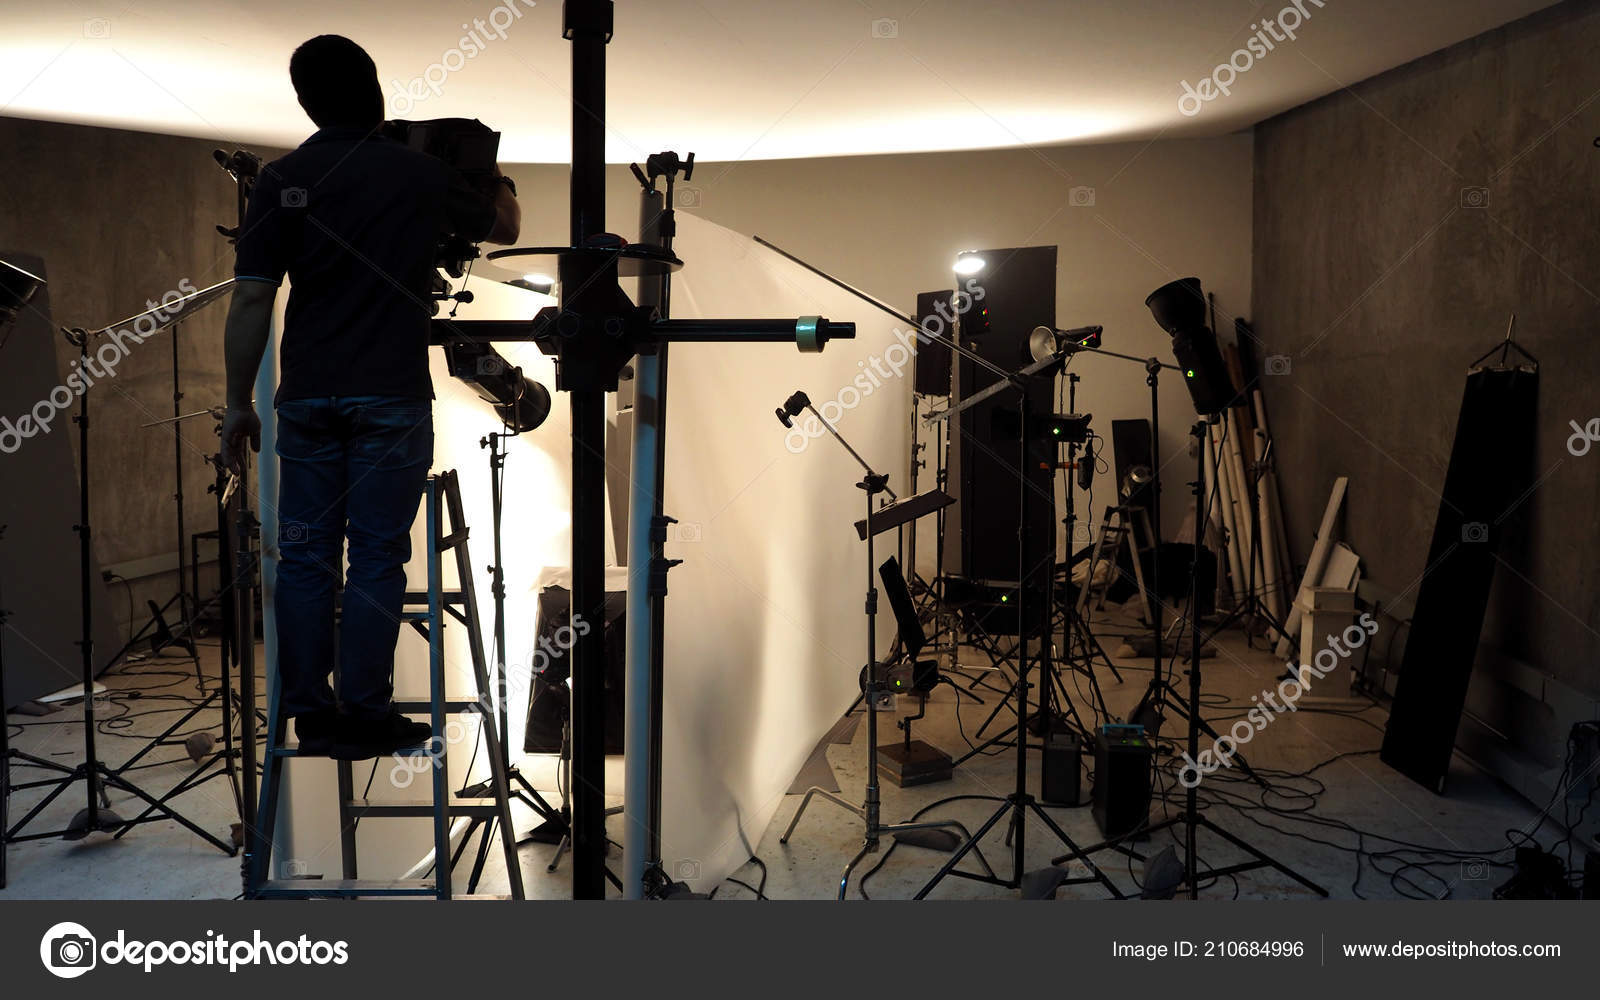 Lighting Setup Studio Commercial Works Photo Movie Video Film